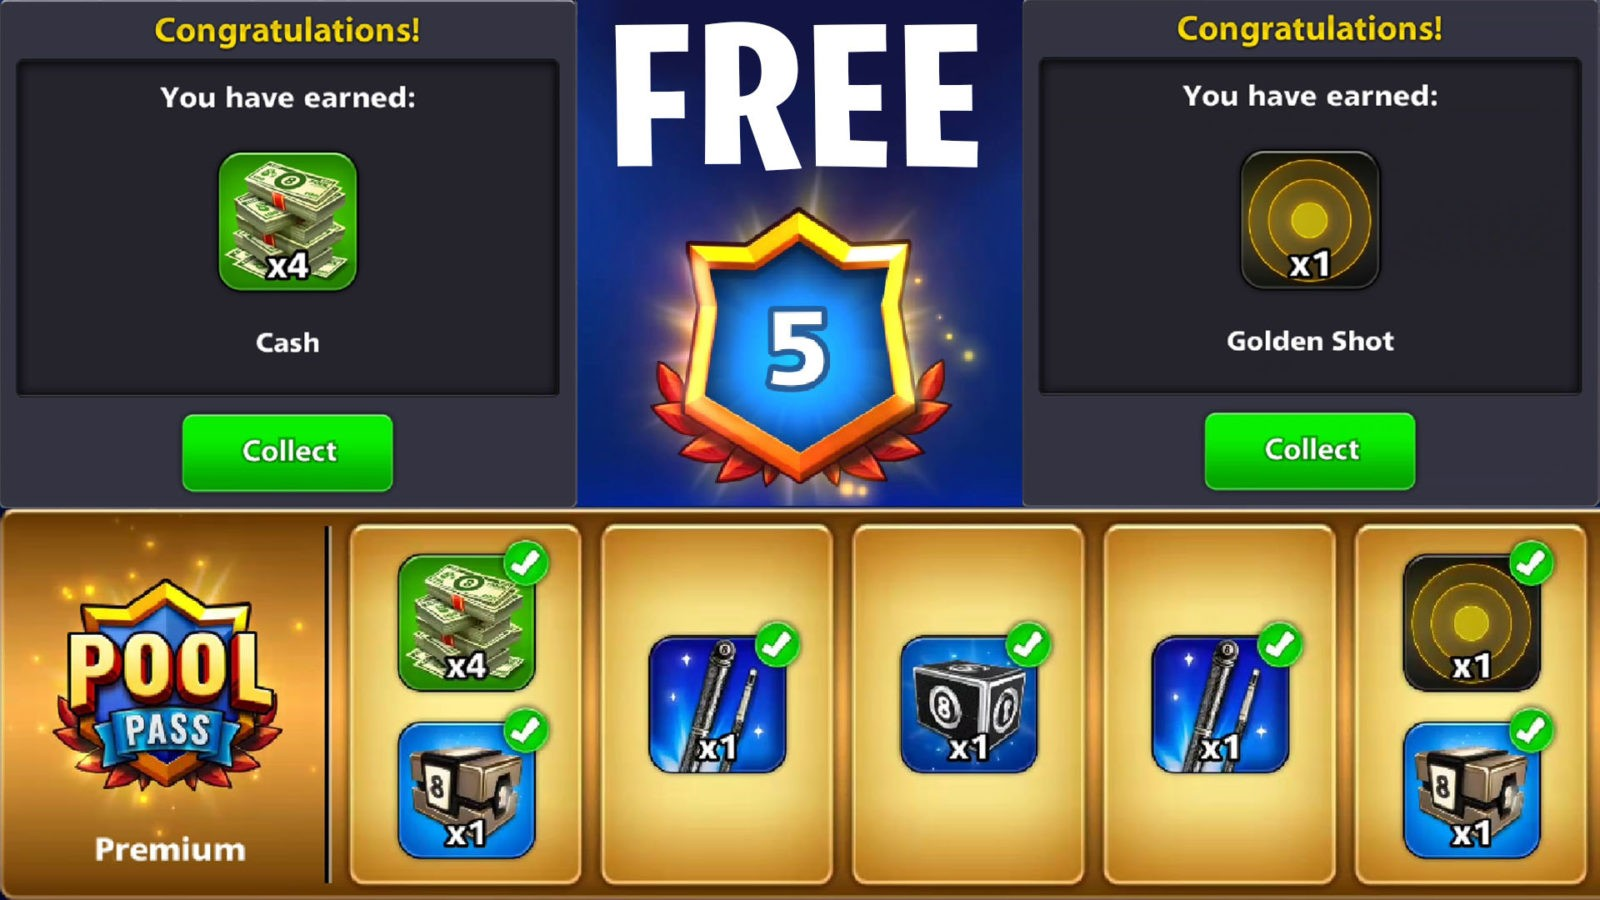 8 Ball Pool update version history for Android - APK Download